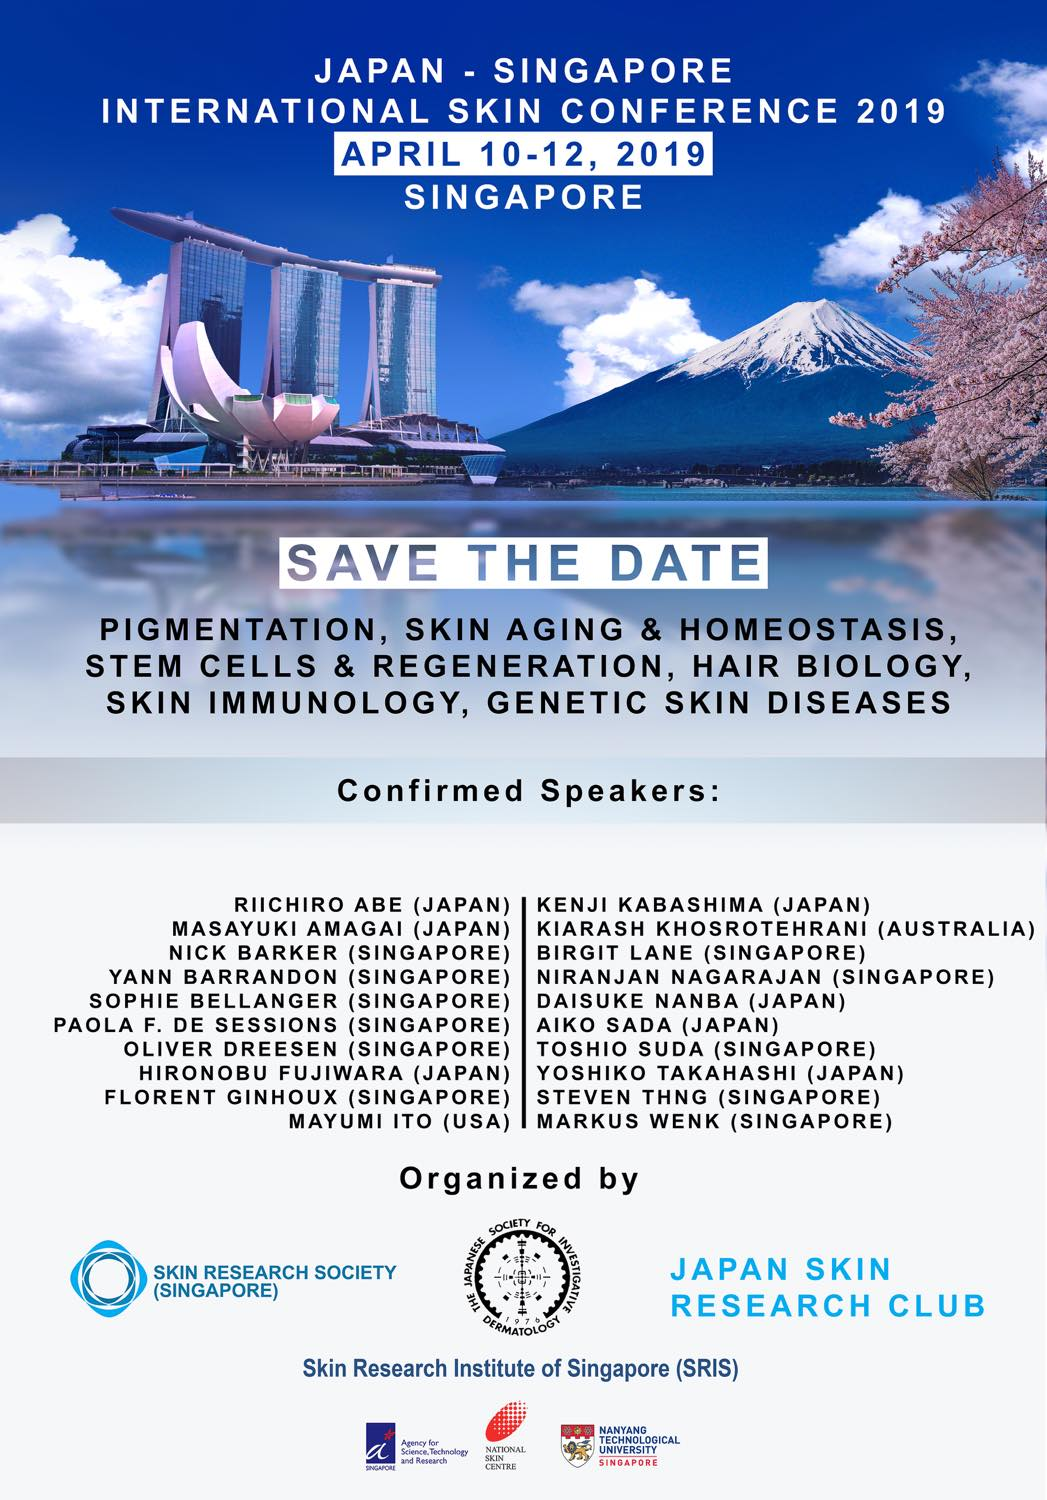 Th_japan_singapore_skin_conference_